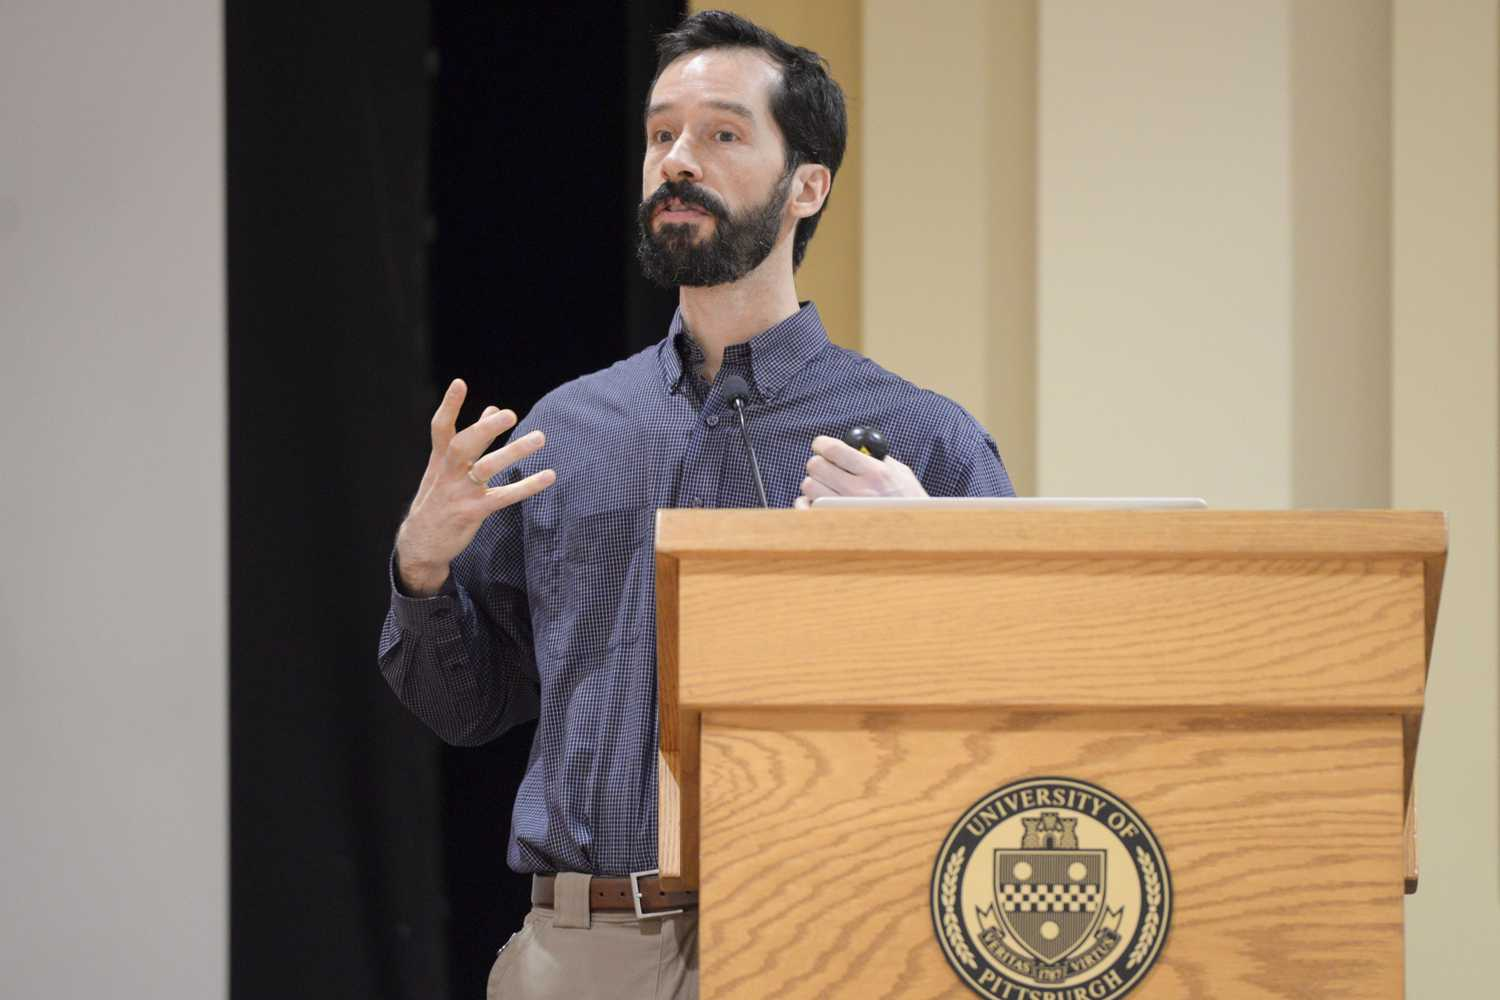 Mark Dixon discussed the hazards of having an ethane cracker plant close to Pittsburgh during a talk in the William Pitt Union Assembly Room Wednesday evening. (Photo by Issi Glatts | Staff Photographer)